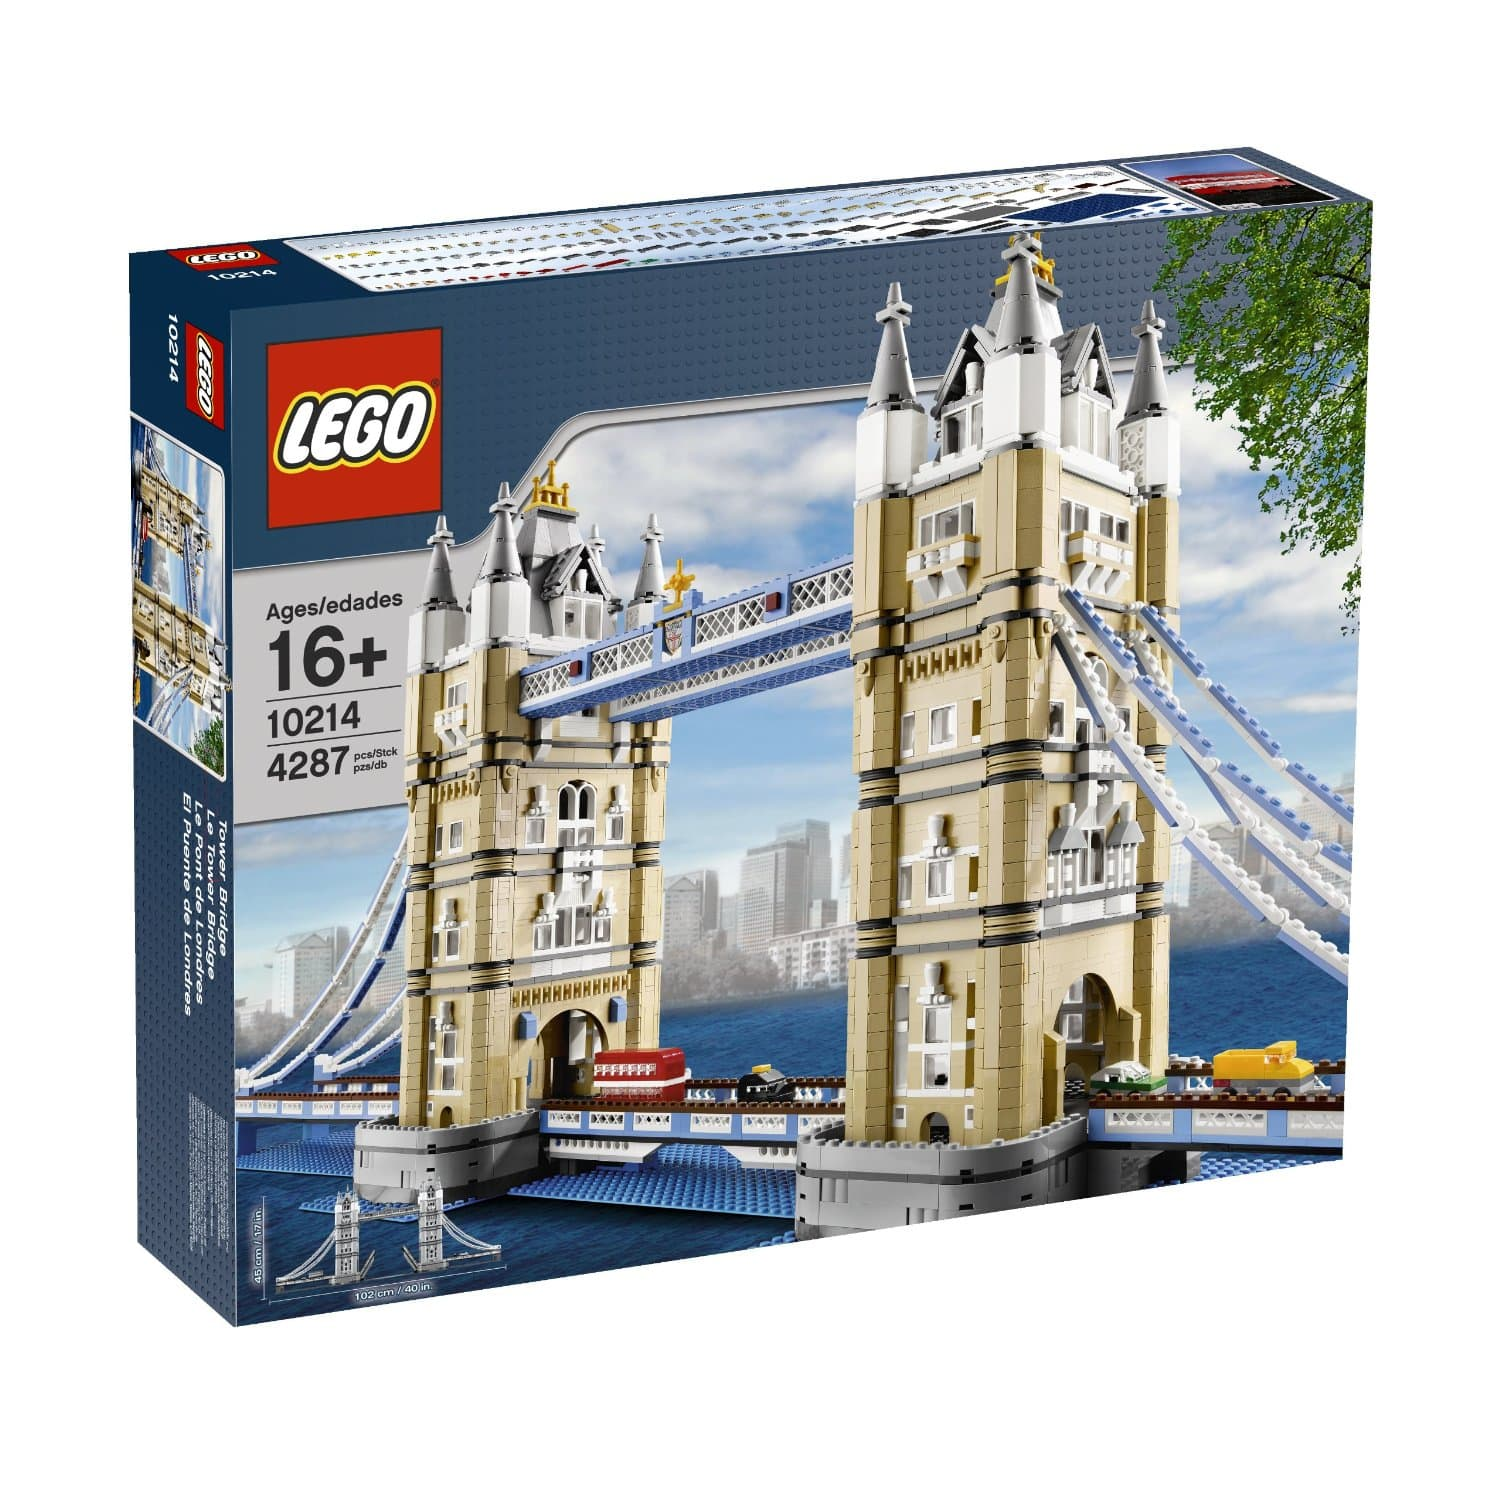 LEGO Tower Bridge $178.50, LEGO Pet Shop $111.50 + Free shipping